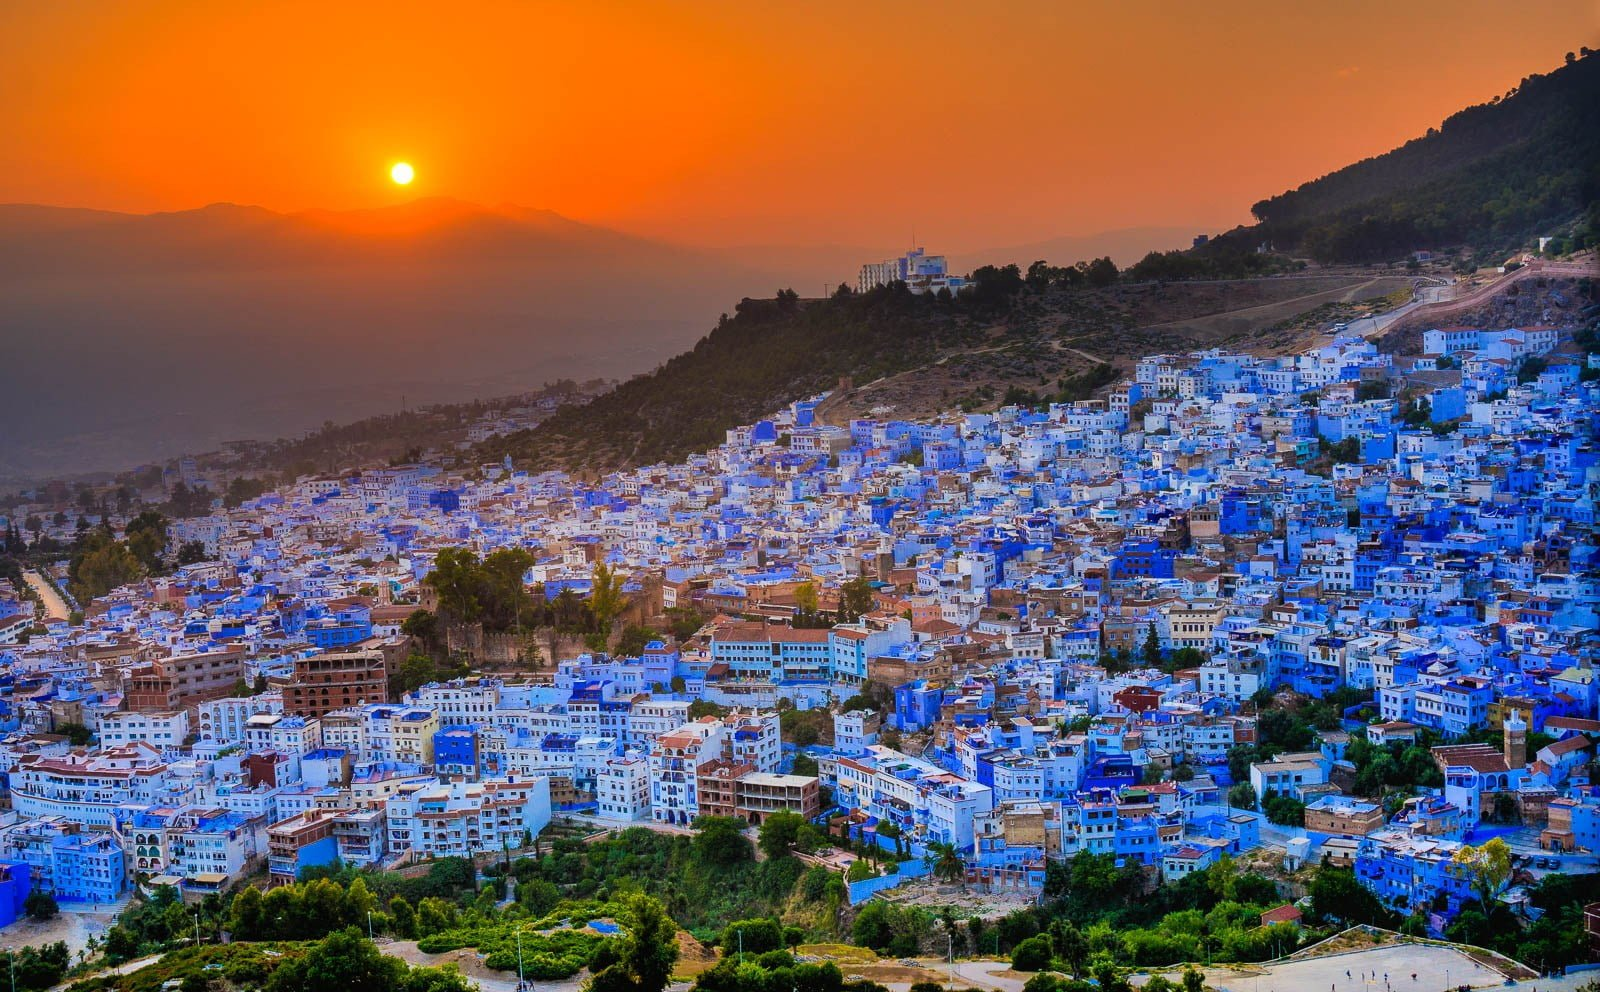 Sunset above Chefchaouen Morocco from Spanish Mosque.